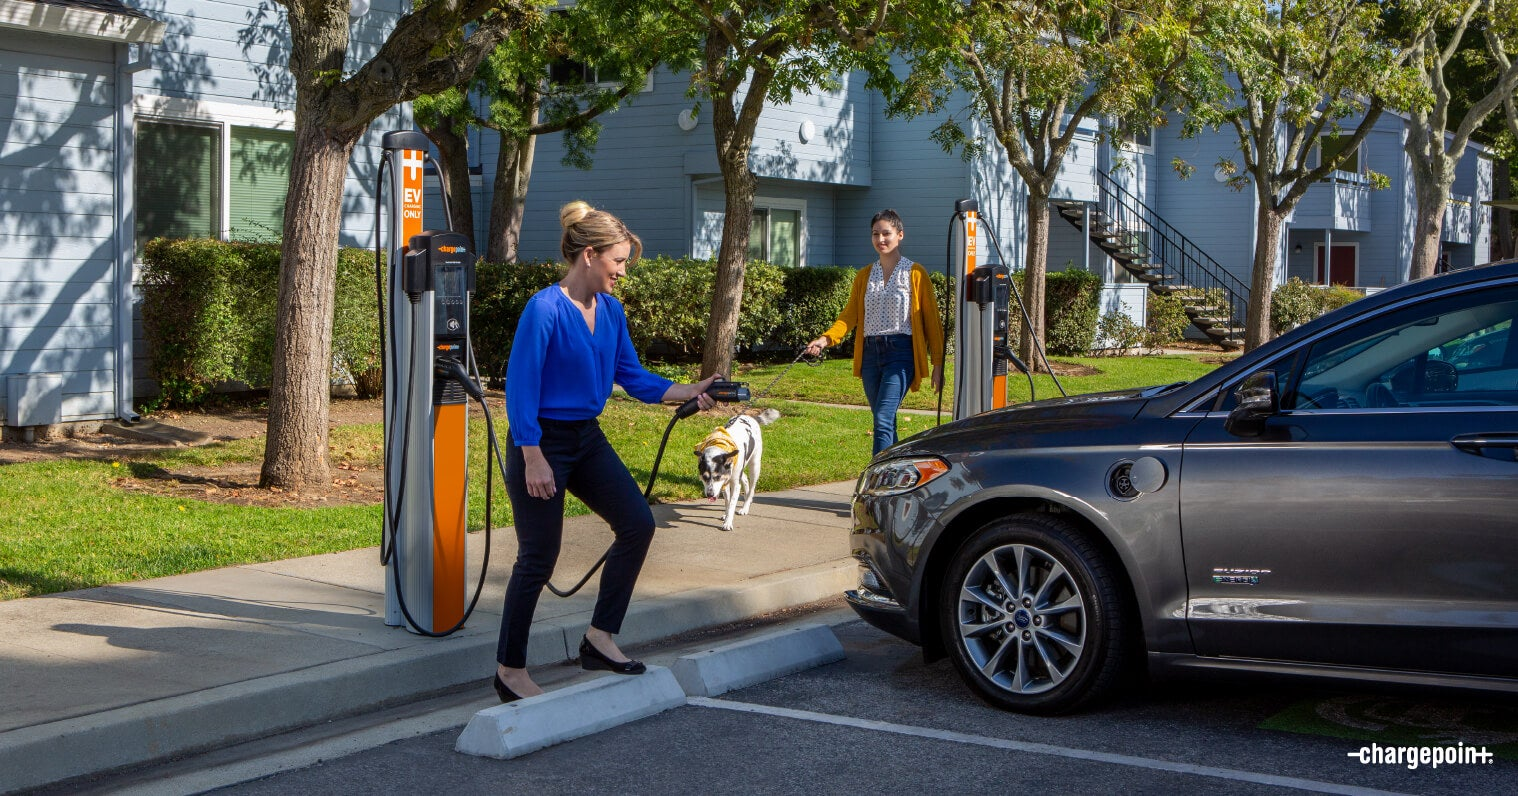 Incentives Help Install EV Charging Where Needed